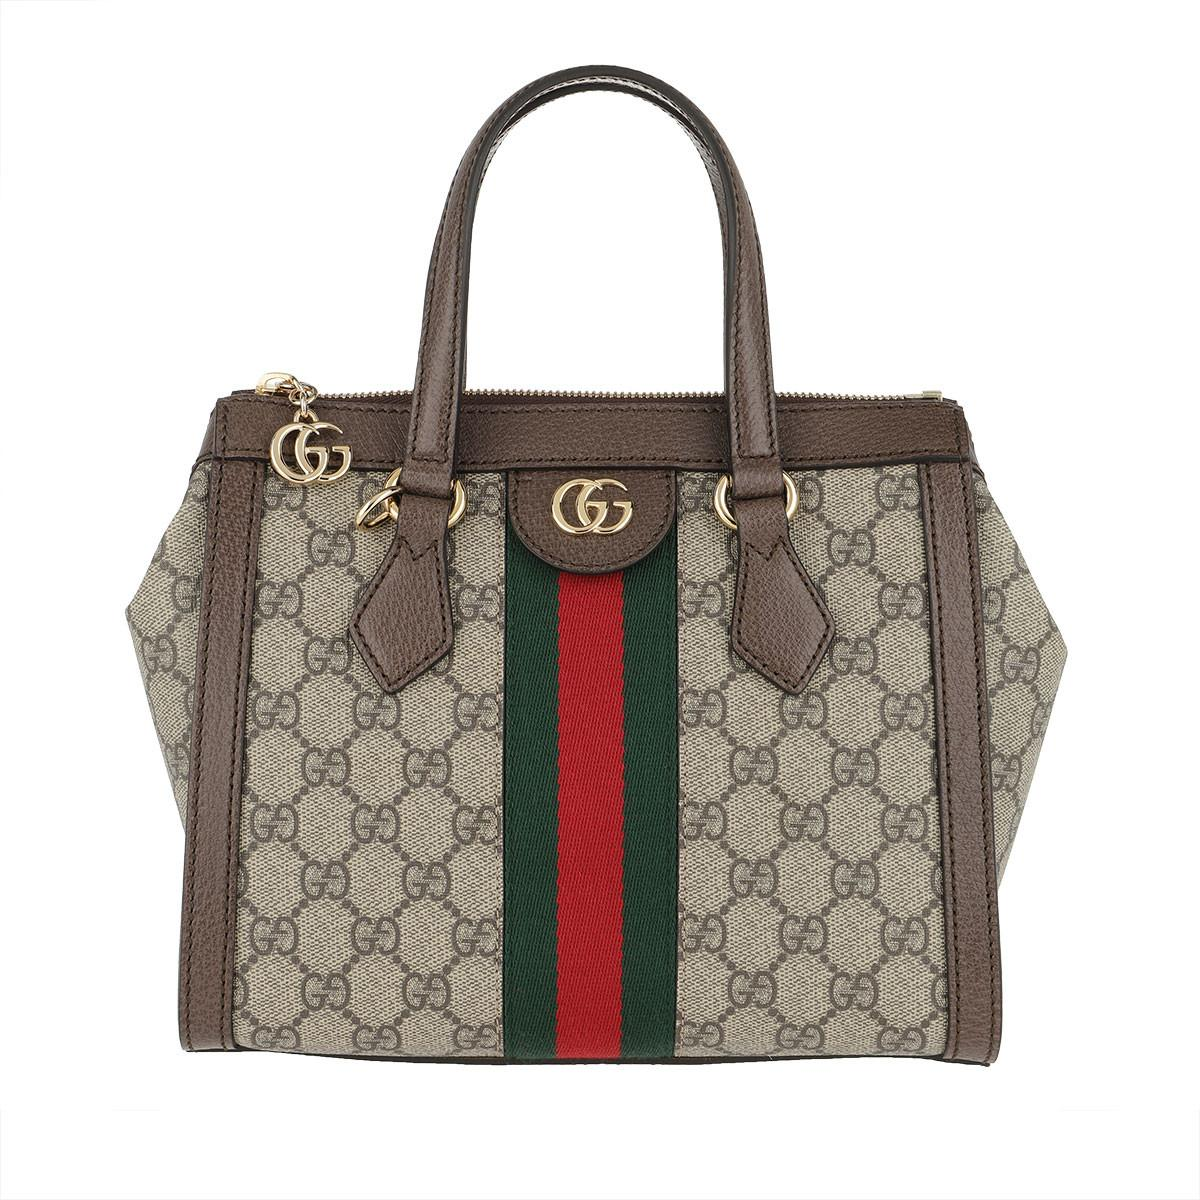 36eb87d8f068 Gucci Ophidia Tote Bag Canvas Small Beige in Brown - Lyst